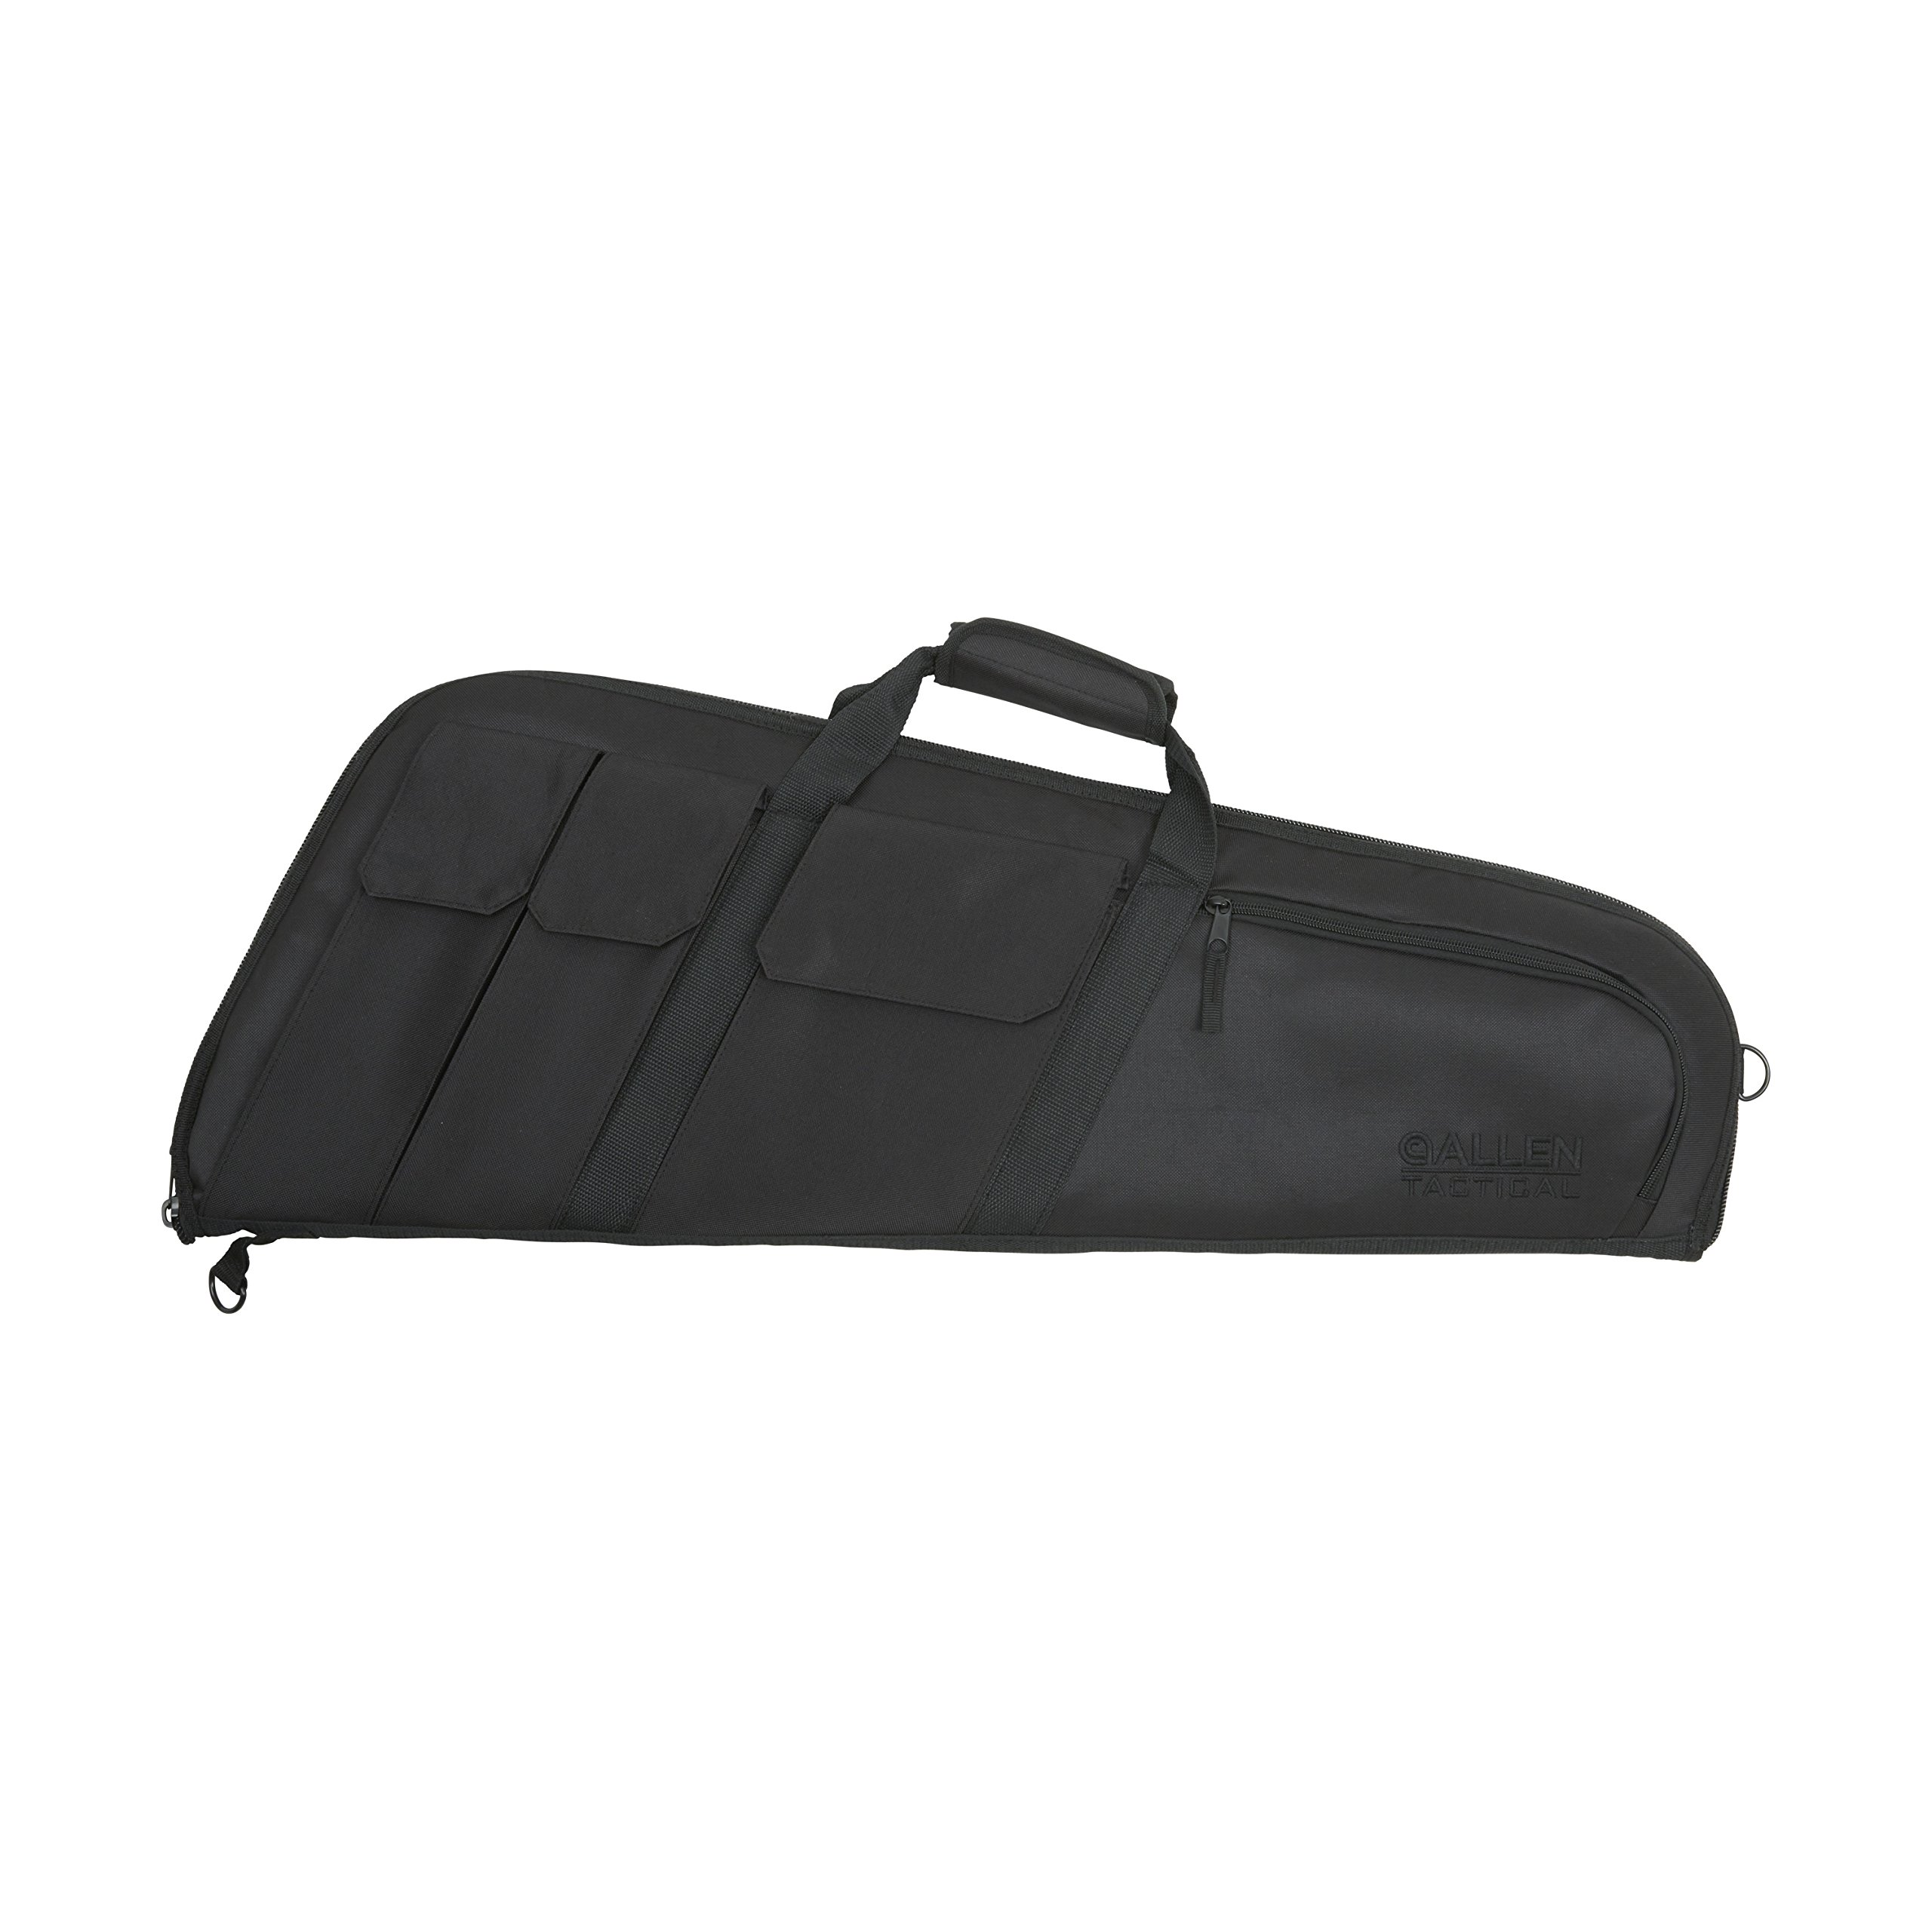 Allen Tactical Wedge Tactical Rifle Case by Allen Company